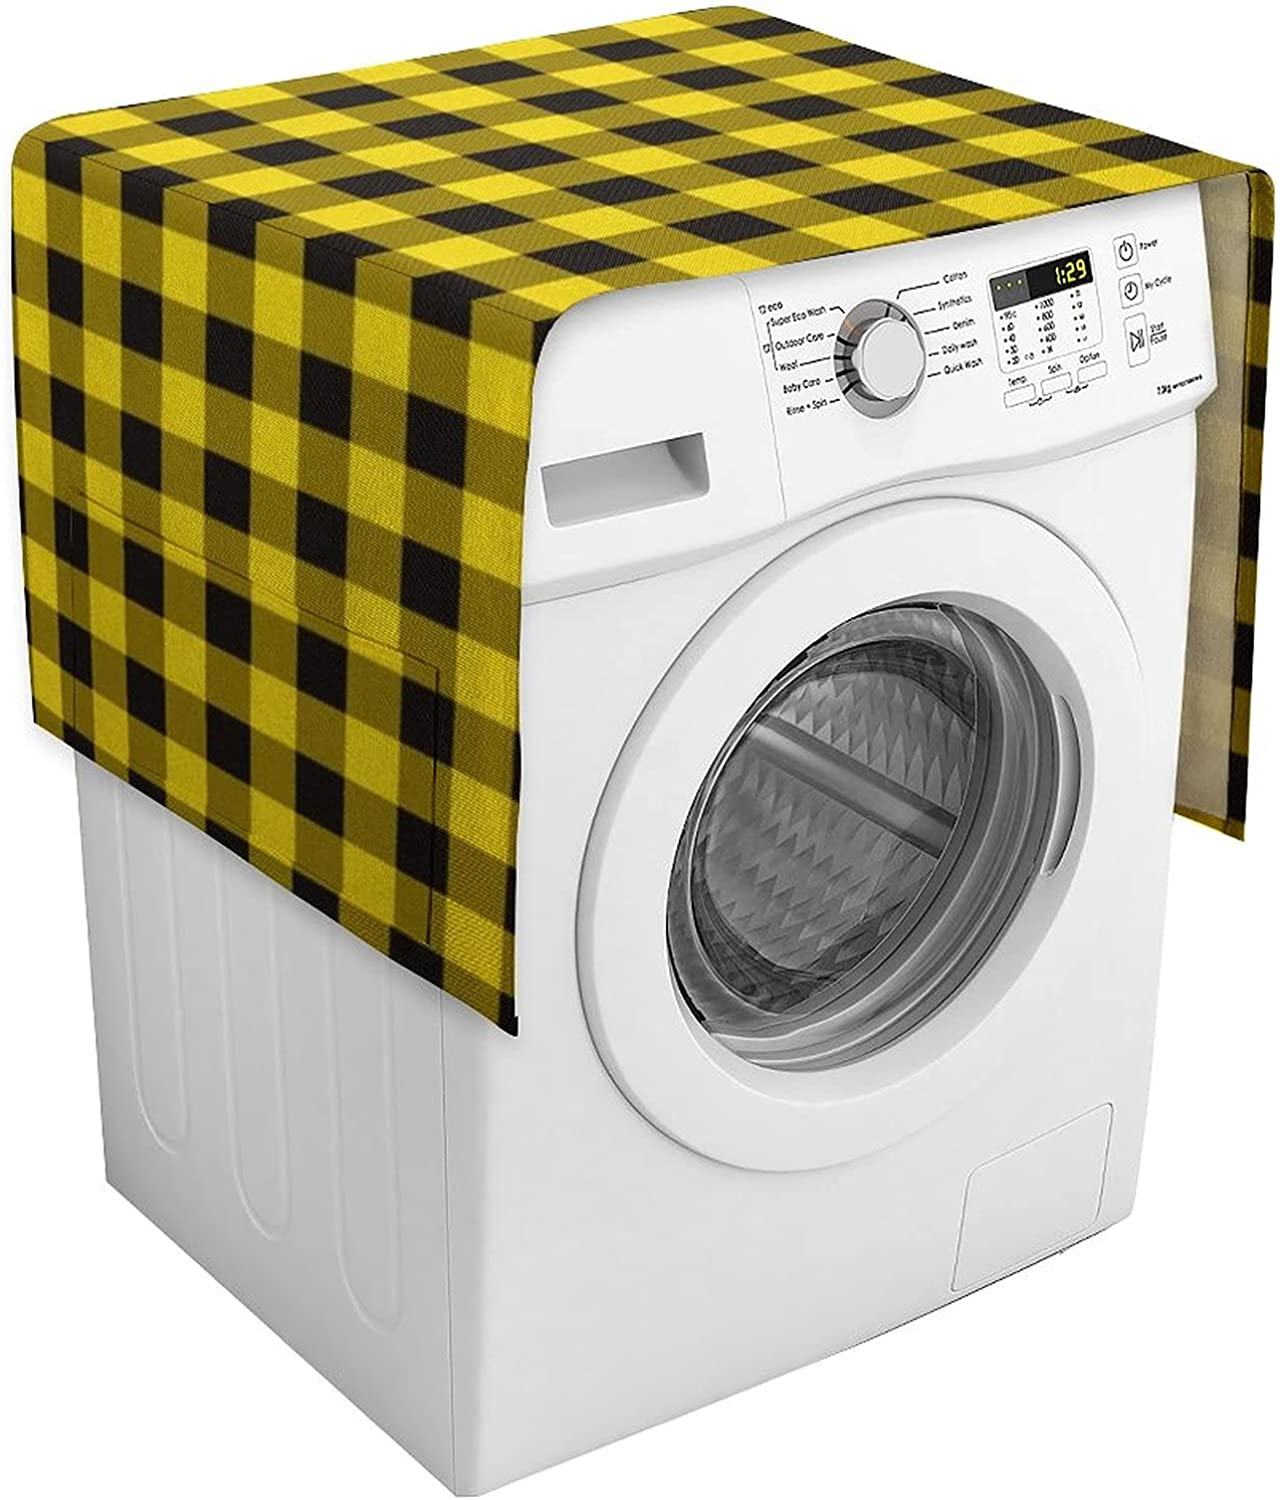 Multi-Purpose Washing Machine Discount mail order Covers Washer San Diego Mall Appliance Protector